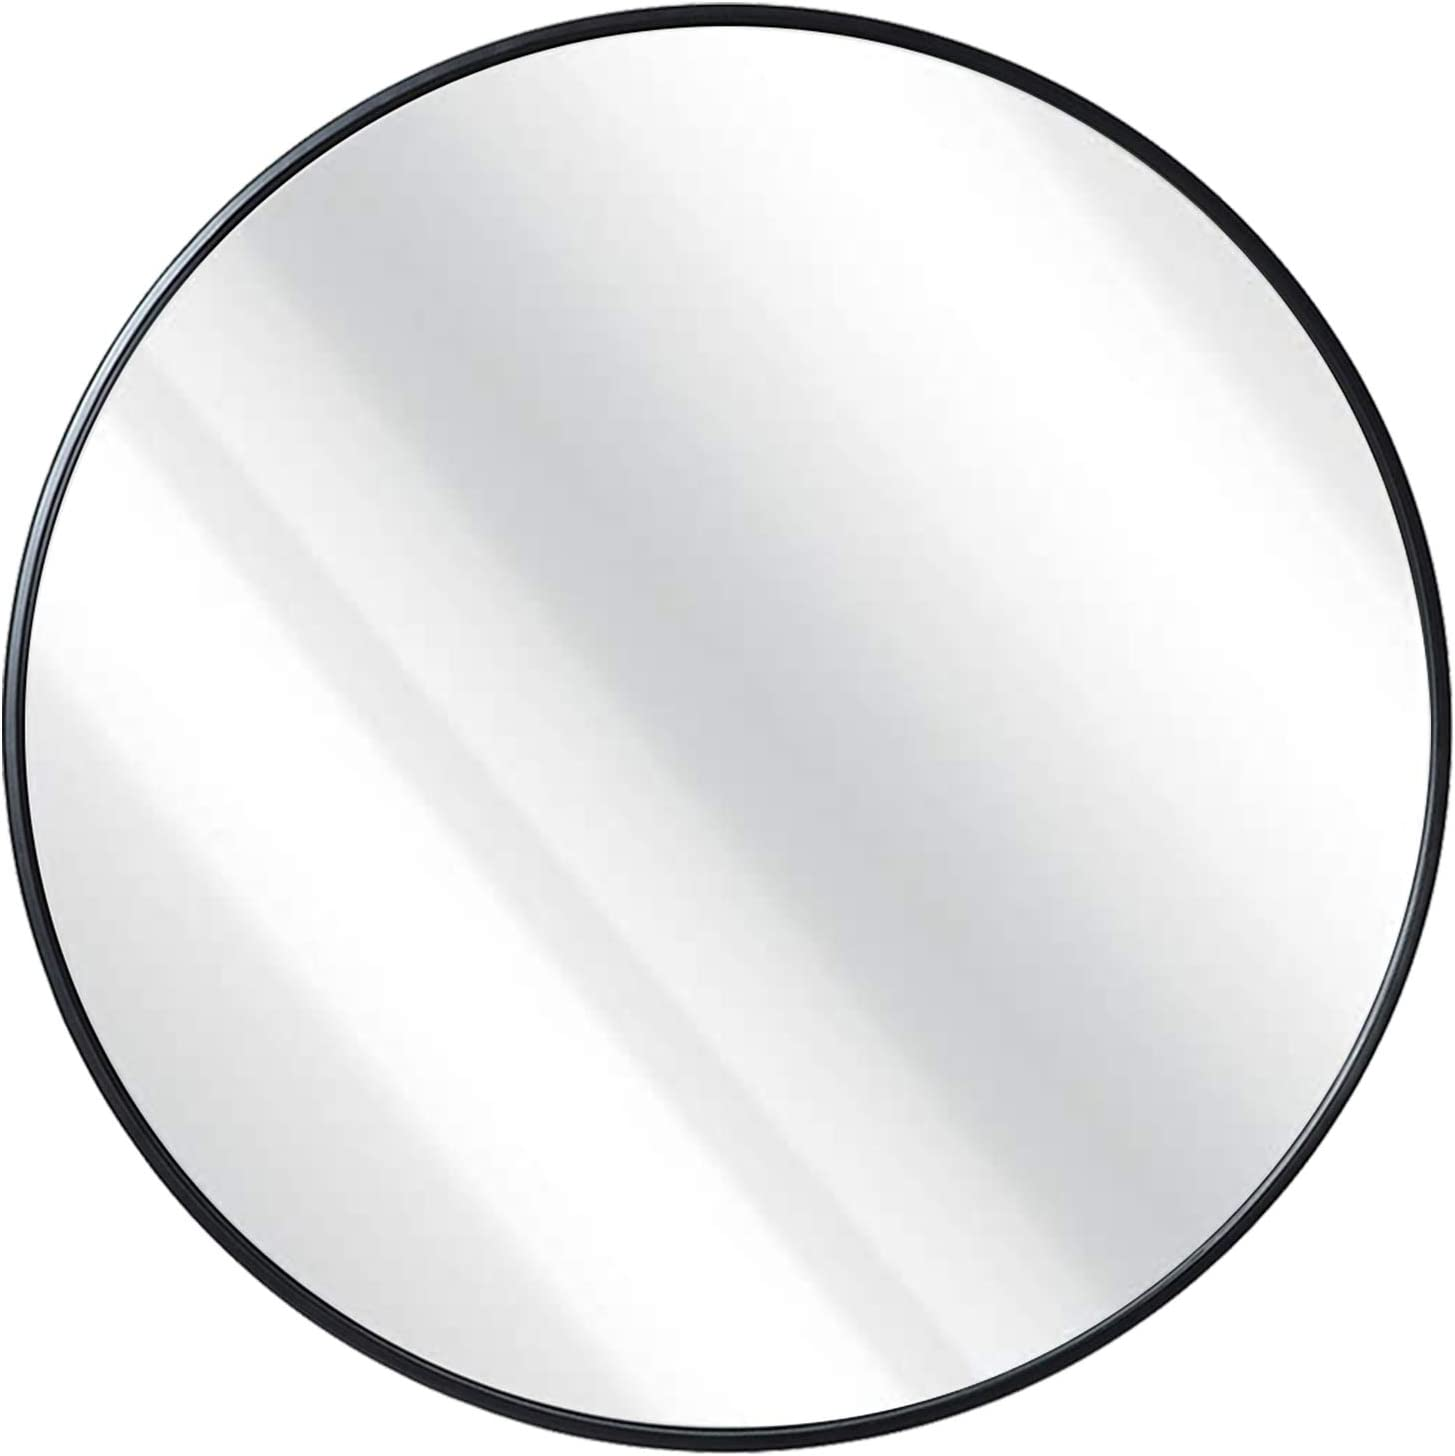 30 inch Round Mirror, Metal Frame Wall Mounted Large Circle Mirror for Washing Room, Living Room, Home Decoration: Kitchen & Dining